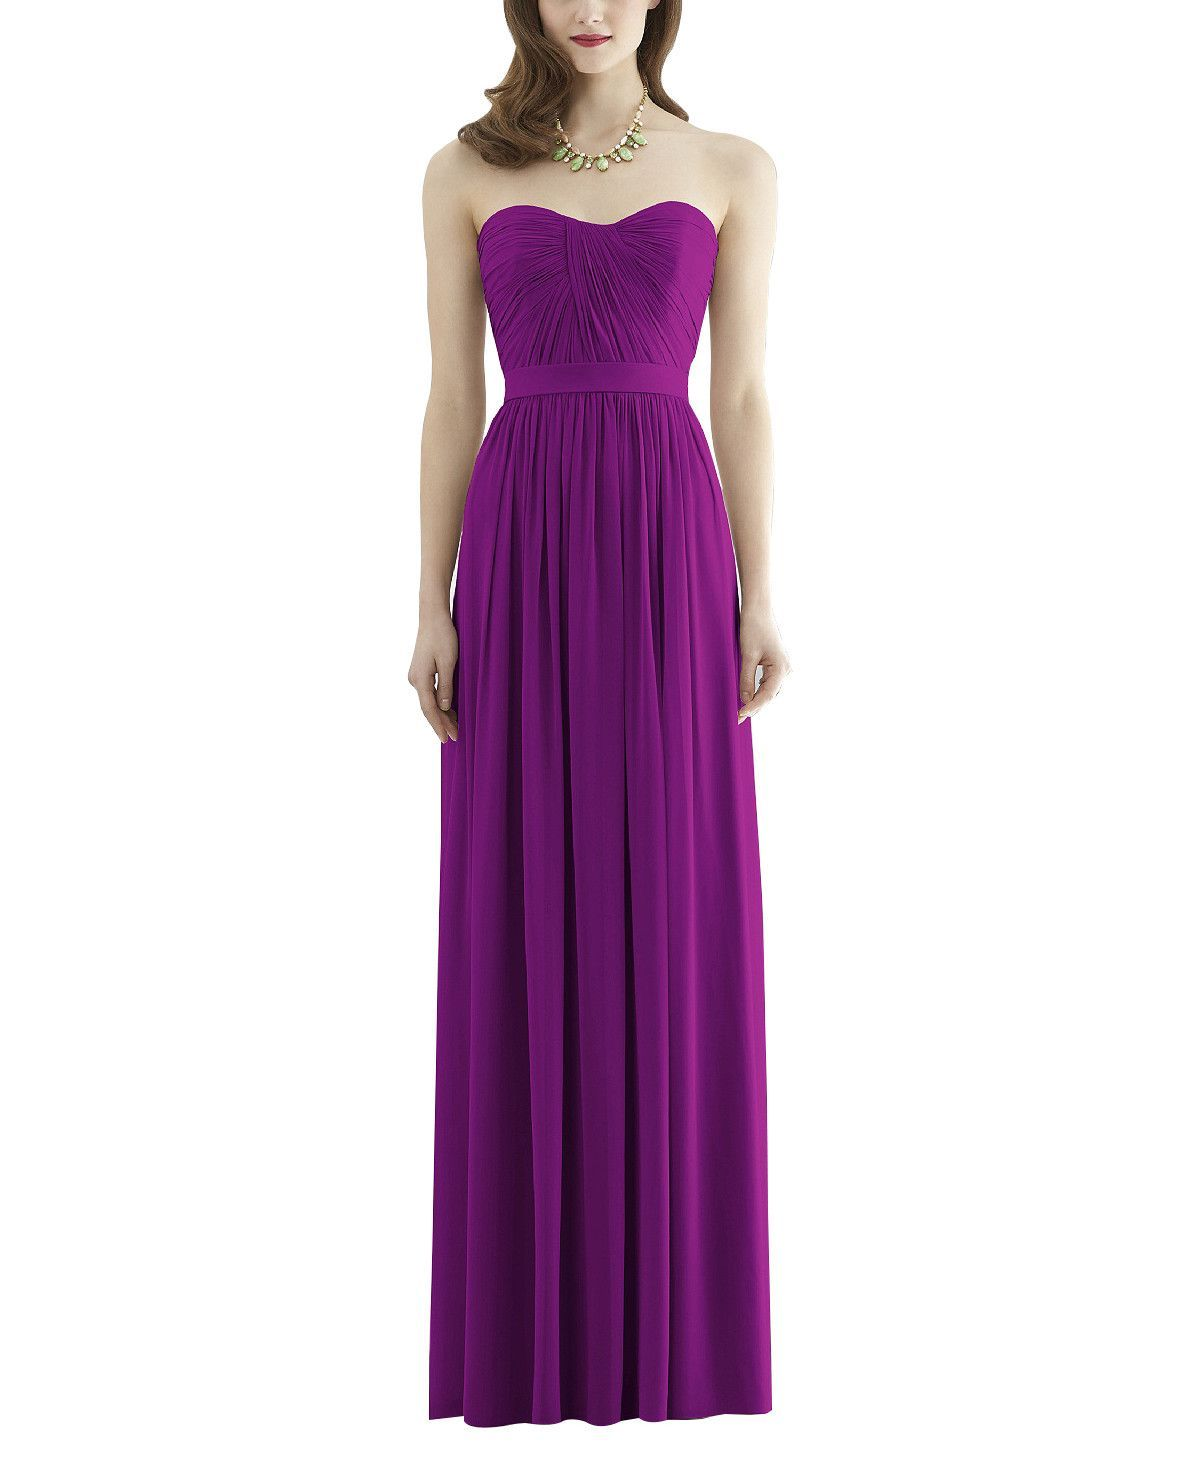 Dessy Collection Style 2943 | Matte satin, Bridesmaid dress styles ...